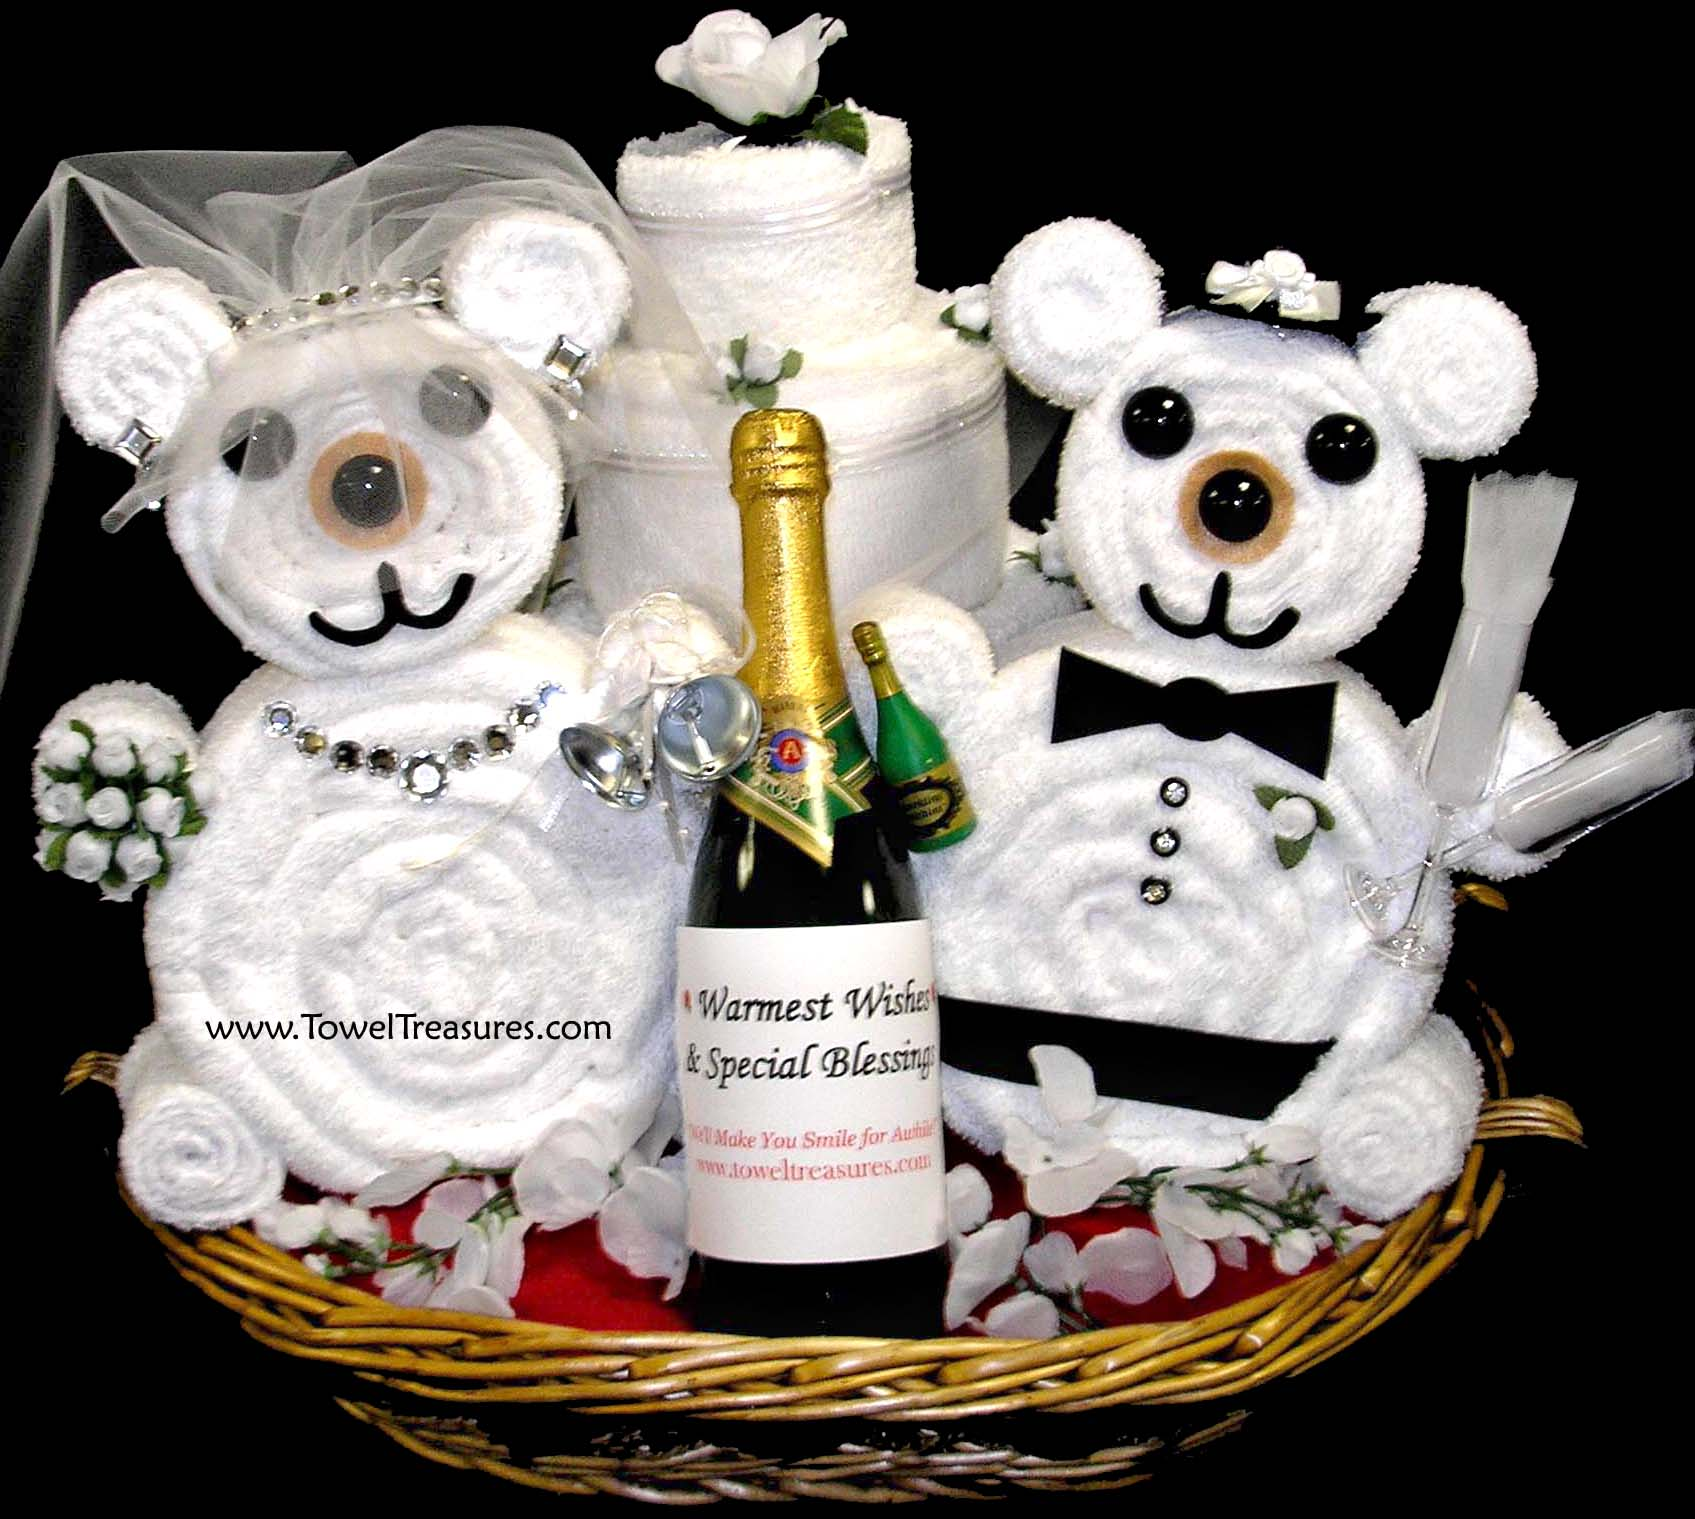 Ideas For Wedding Gift: Wedding World: Wine Wedding Gift Ideas